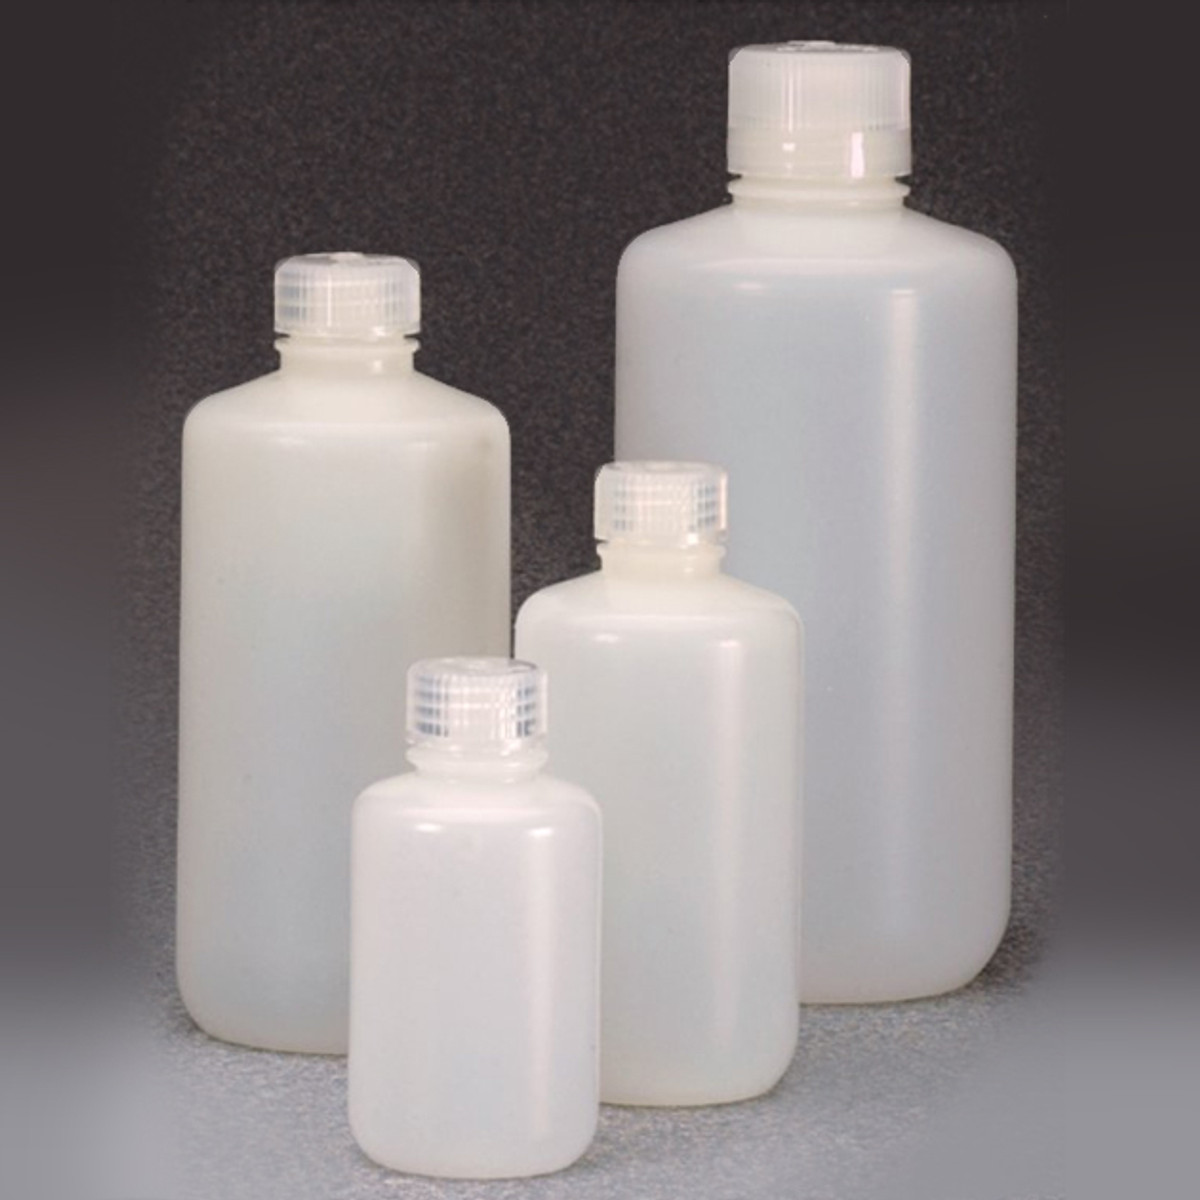 65 mm//Height /& OD 32 oz//Cap Size 6 Bottles 209 mm /& 90 mm//Pack Quantity 1000 ml Fluorinated Wide Mouth High Density Polyethylene Bottles//Capacity